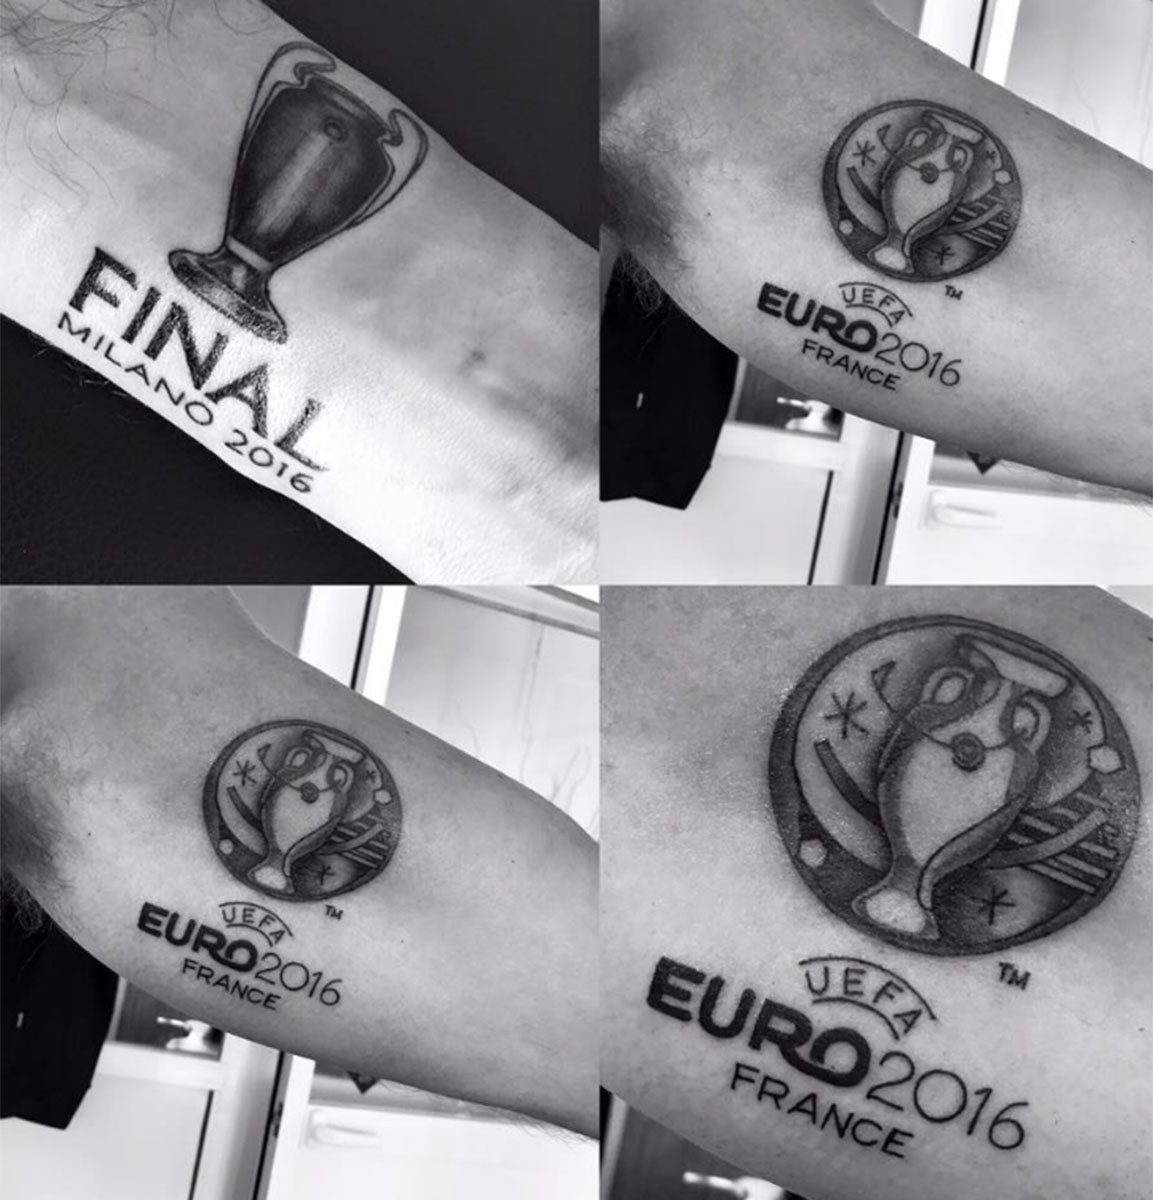 Mark Clattenburg has tattooed the Champions League trophy on his arm and football fans are being very mean about it